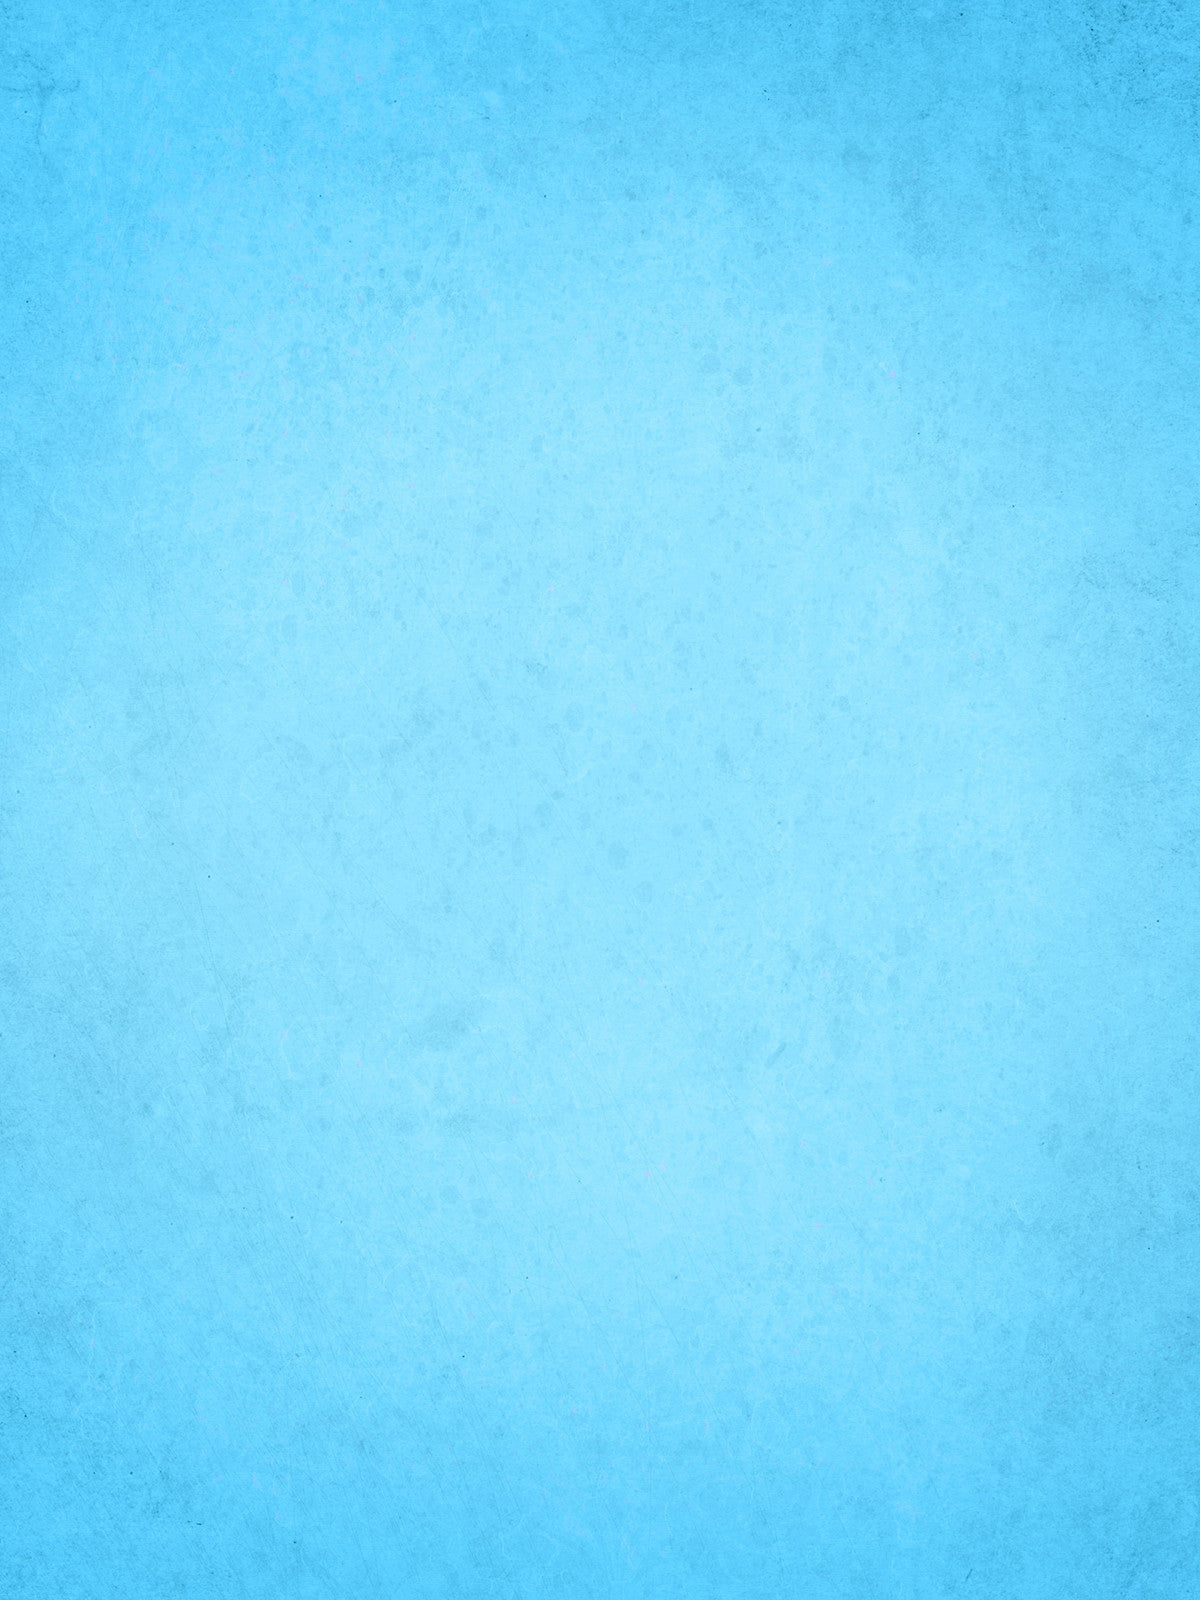 Sky Blue Solid Texture Photo Background / 9042 - DropPlace